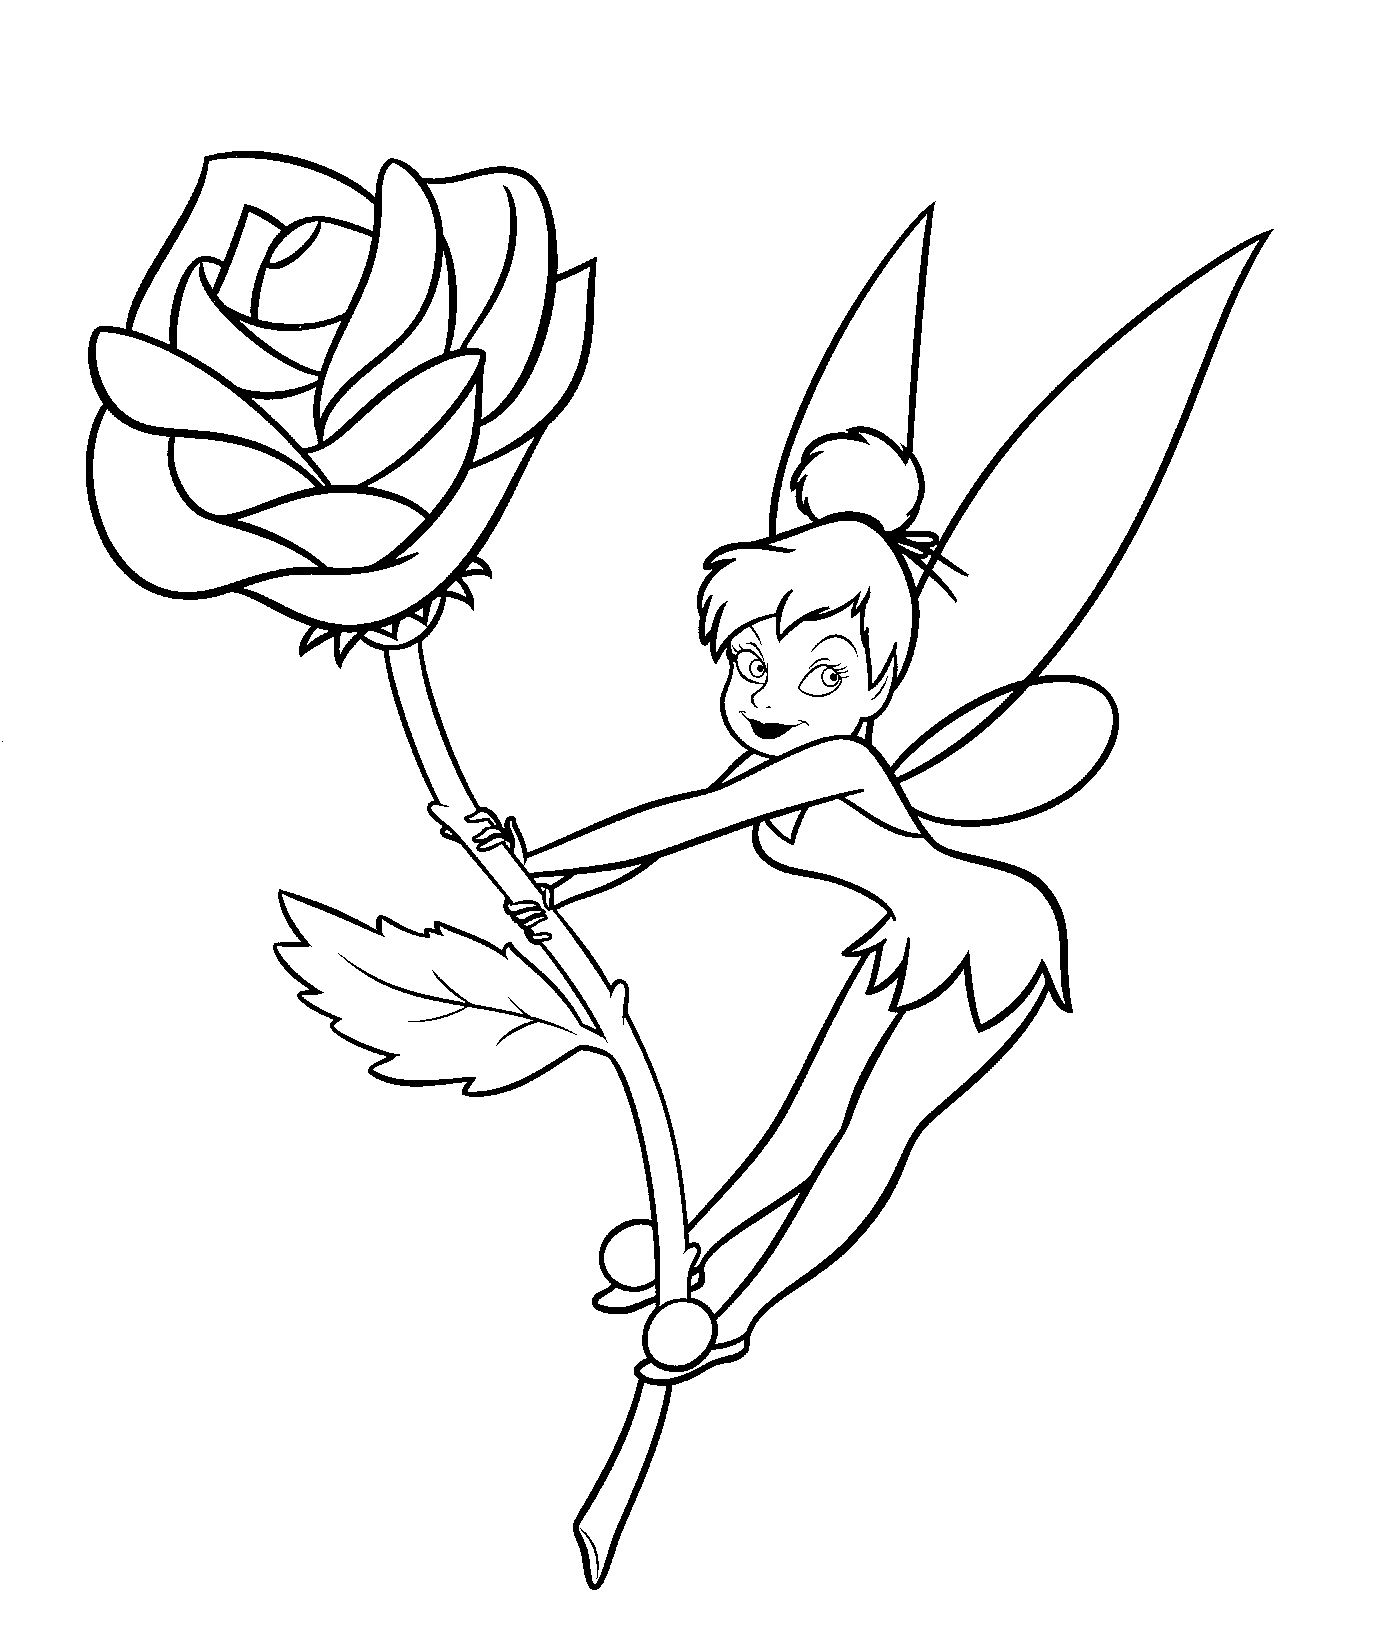 tinkerbell colouring in tinkerbell coloring pages team colors tinkerbell colouring in